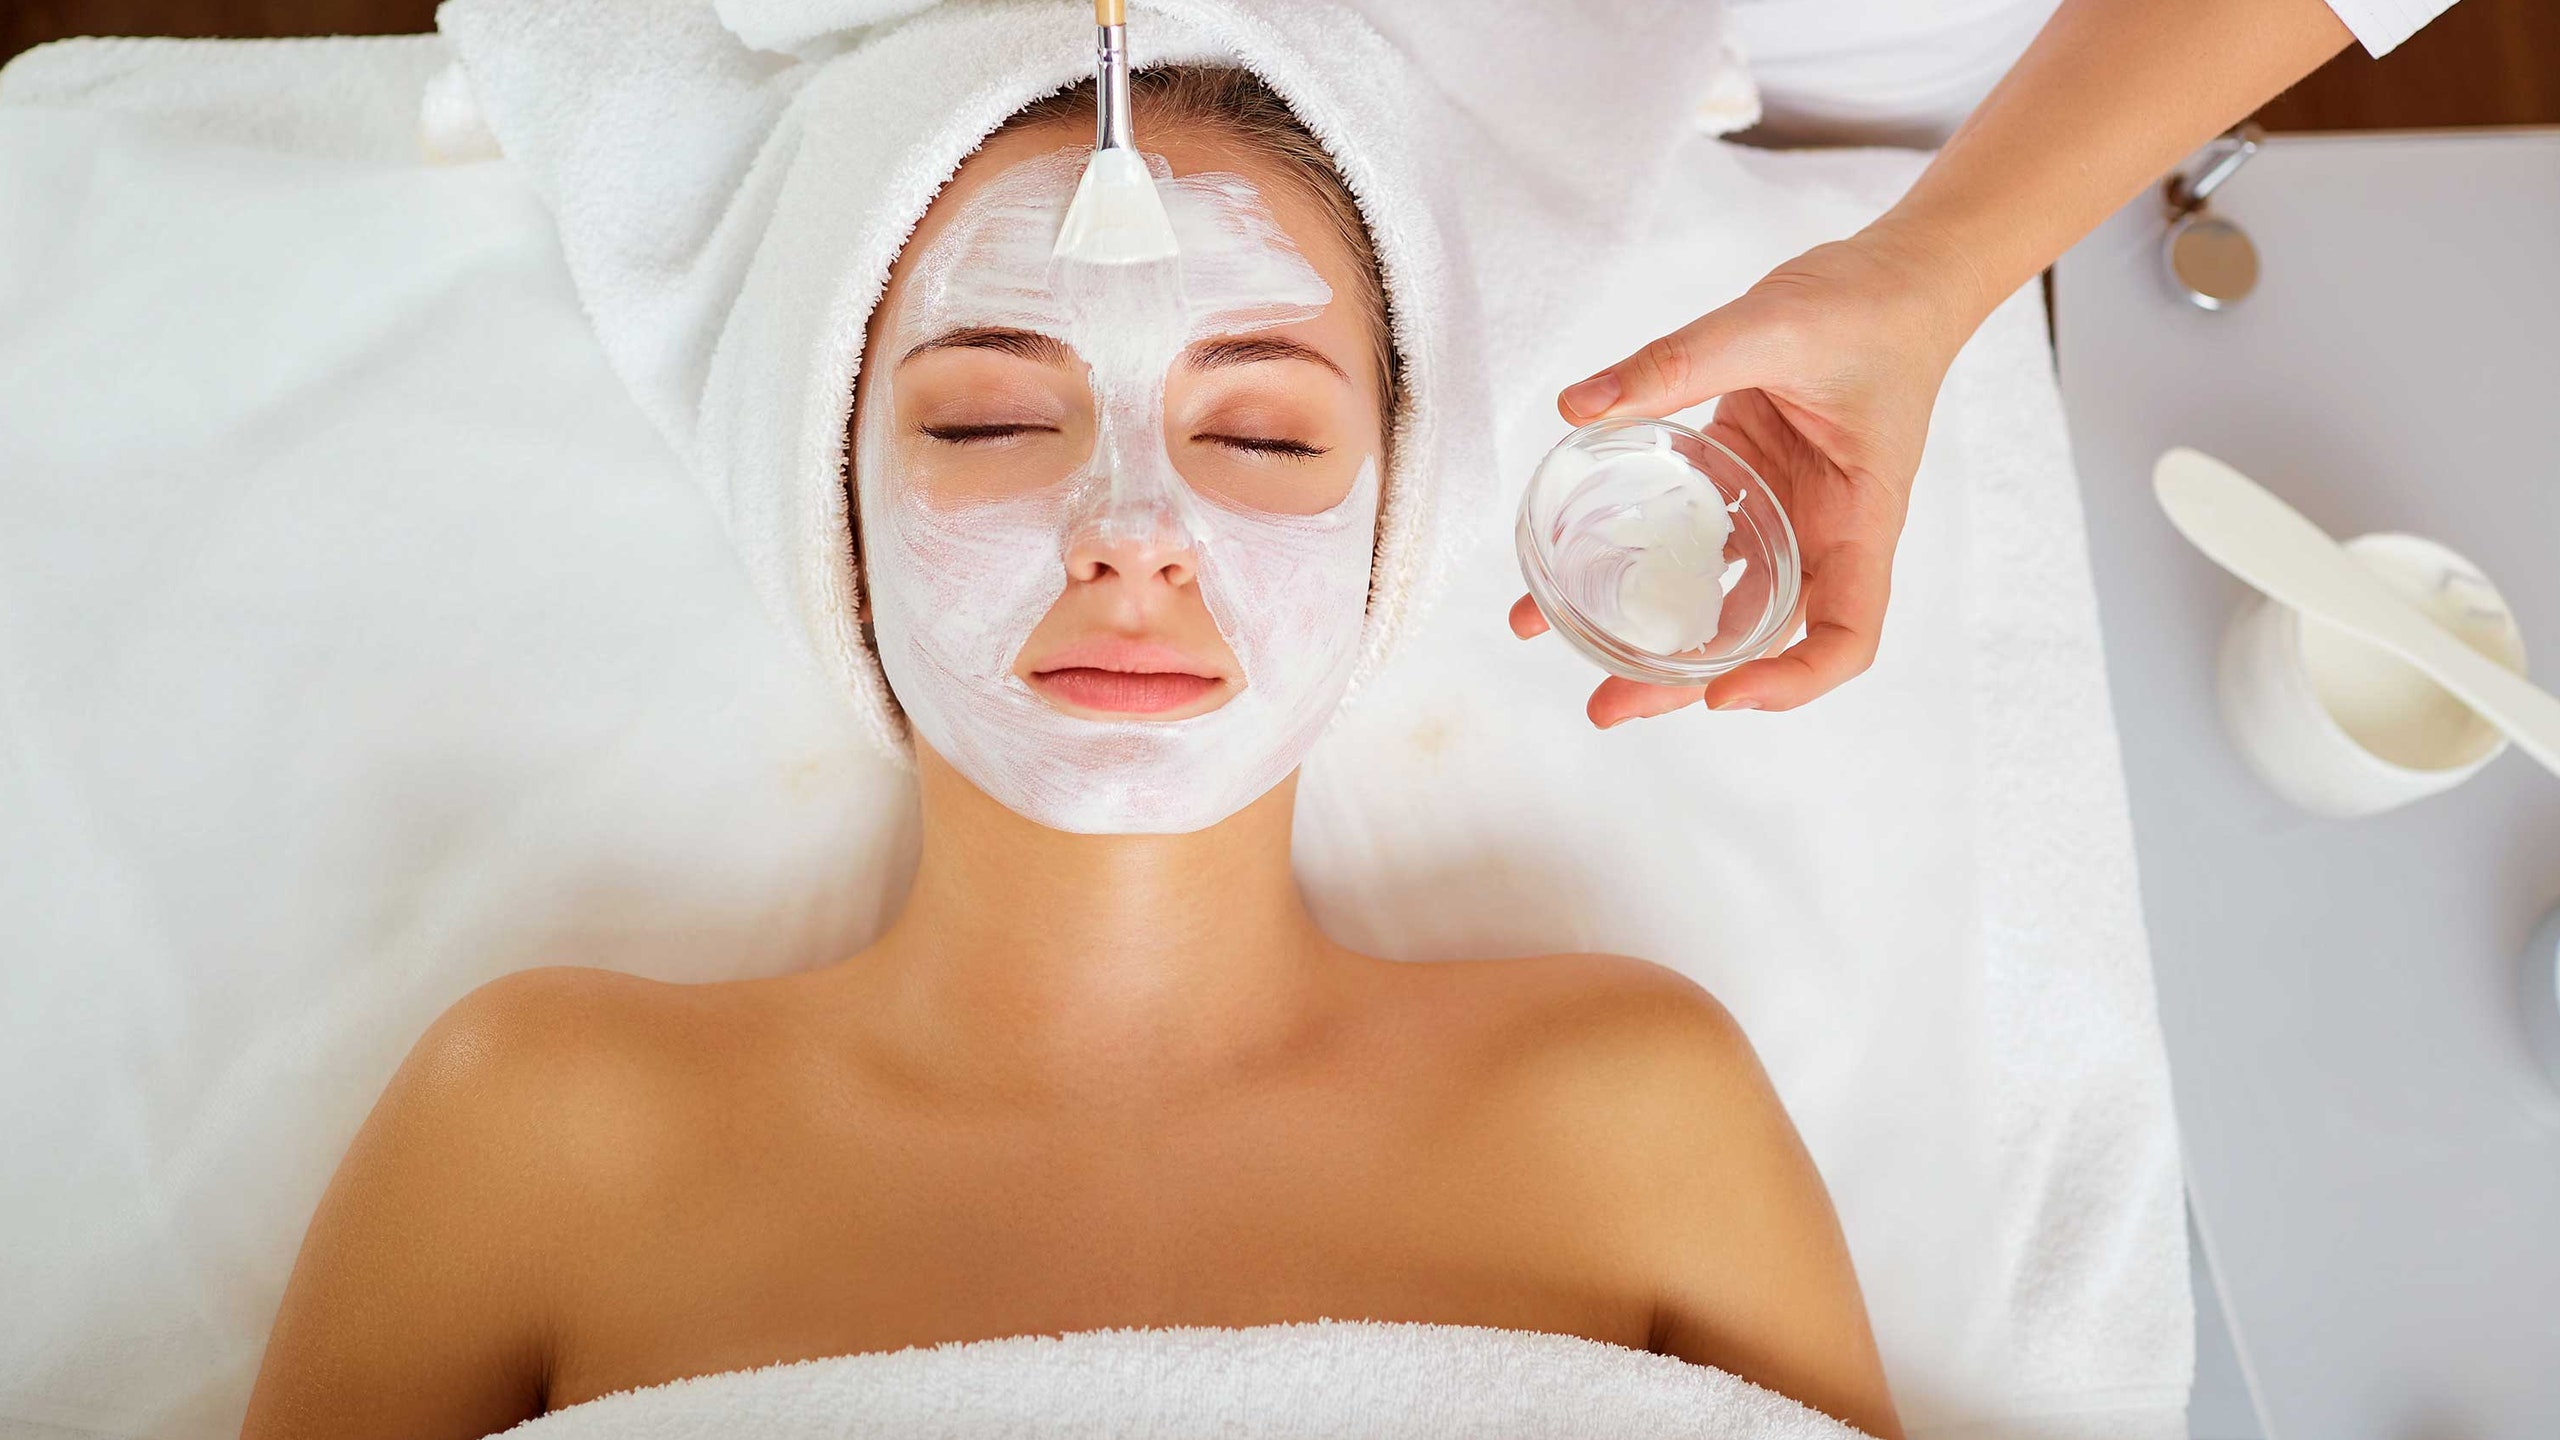 How to Find a Facial Treatment That Works